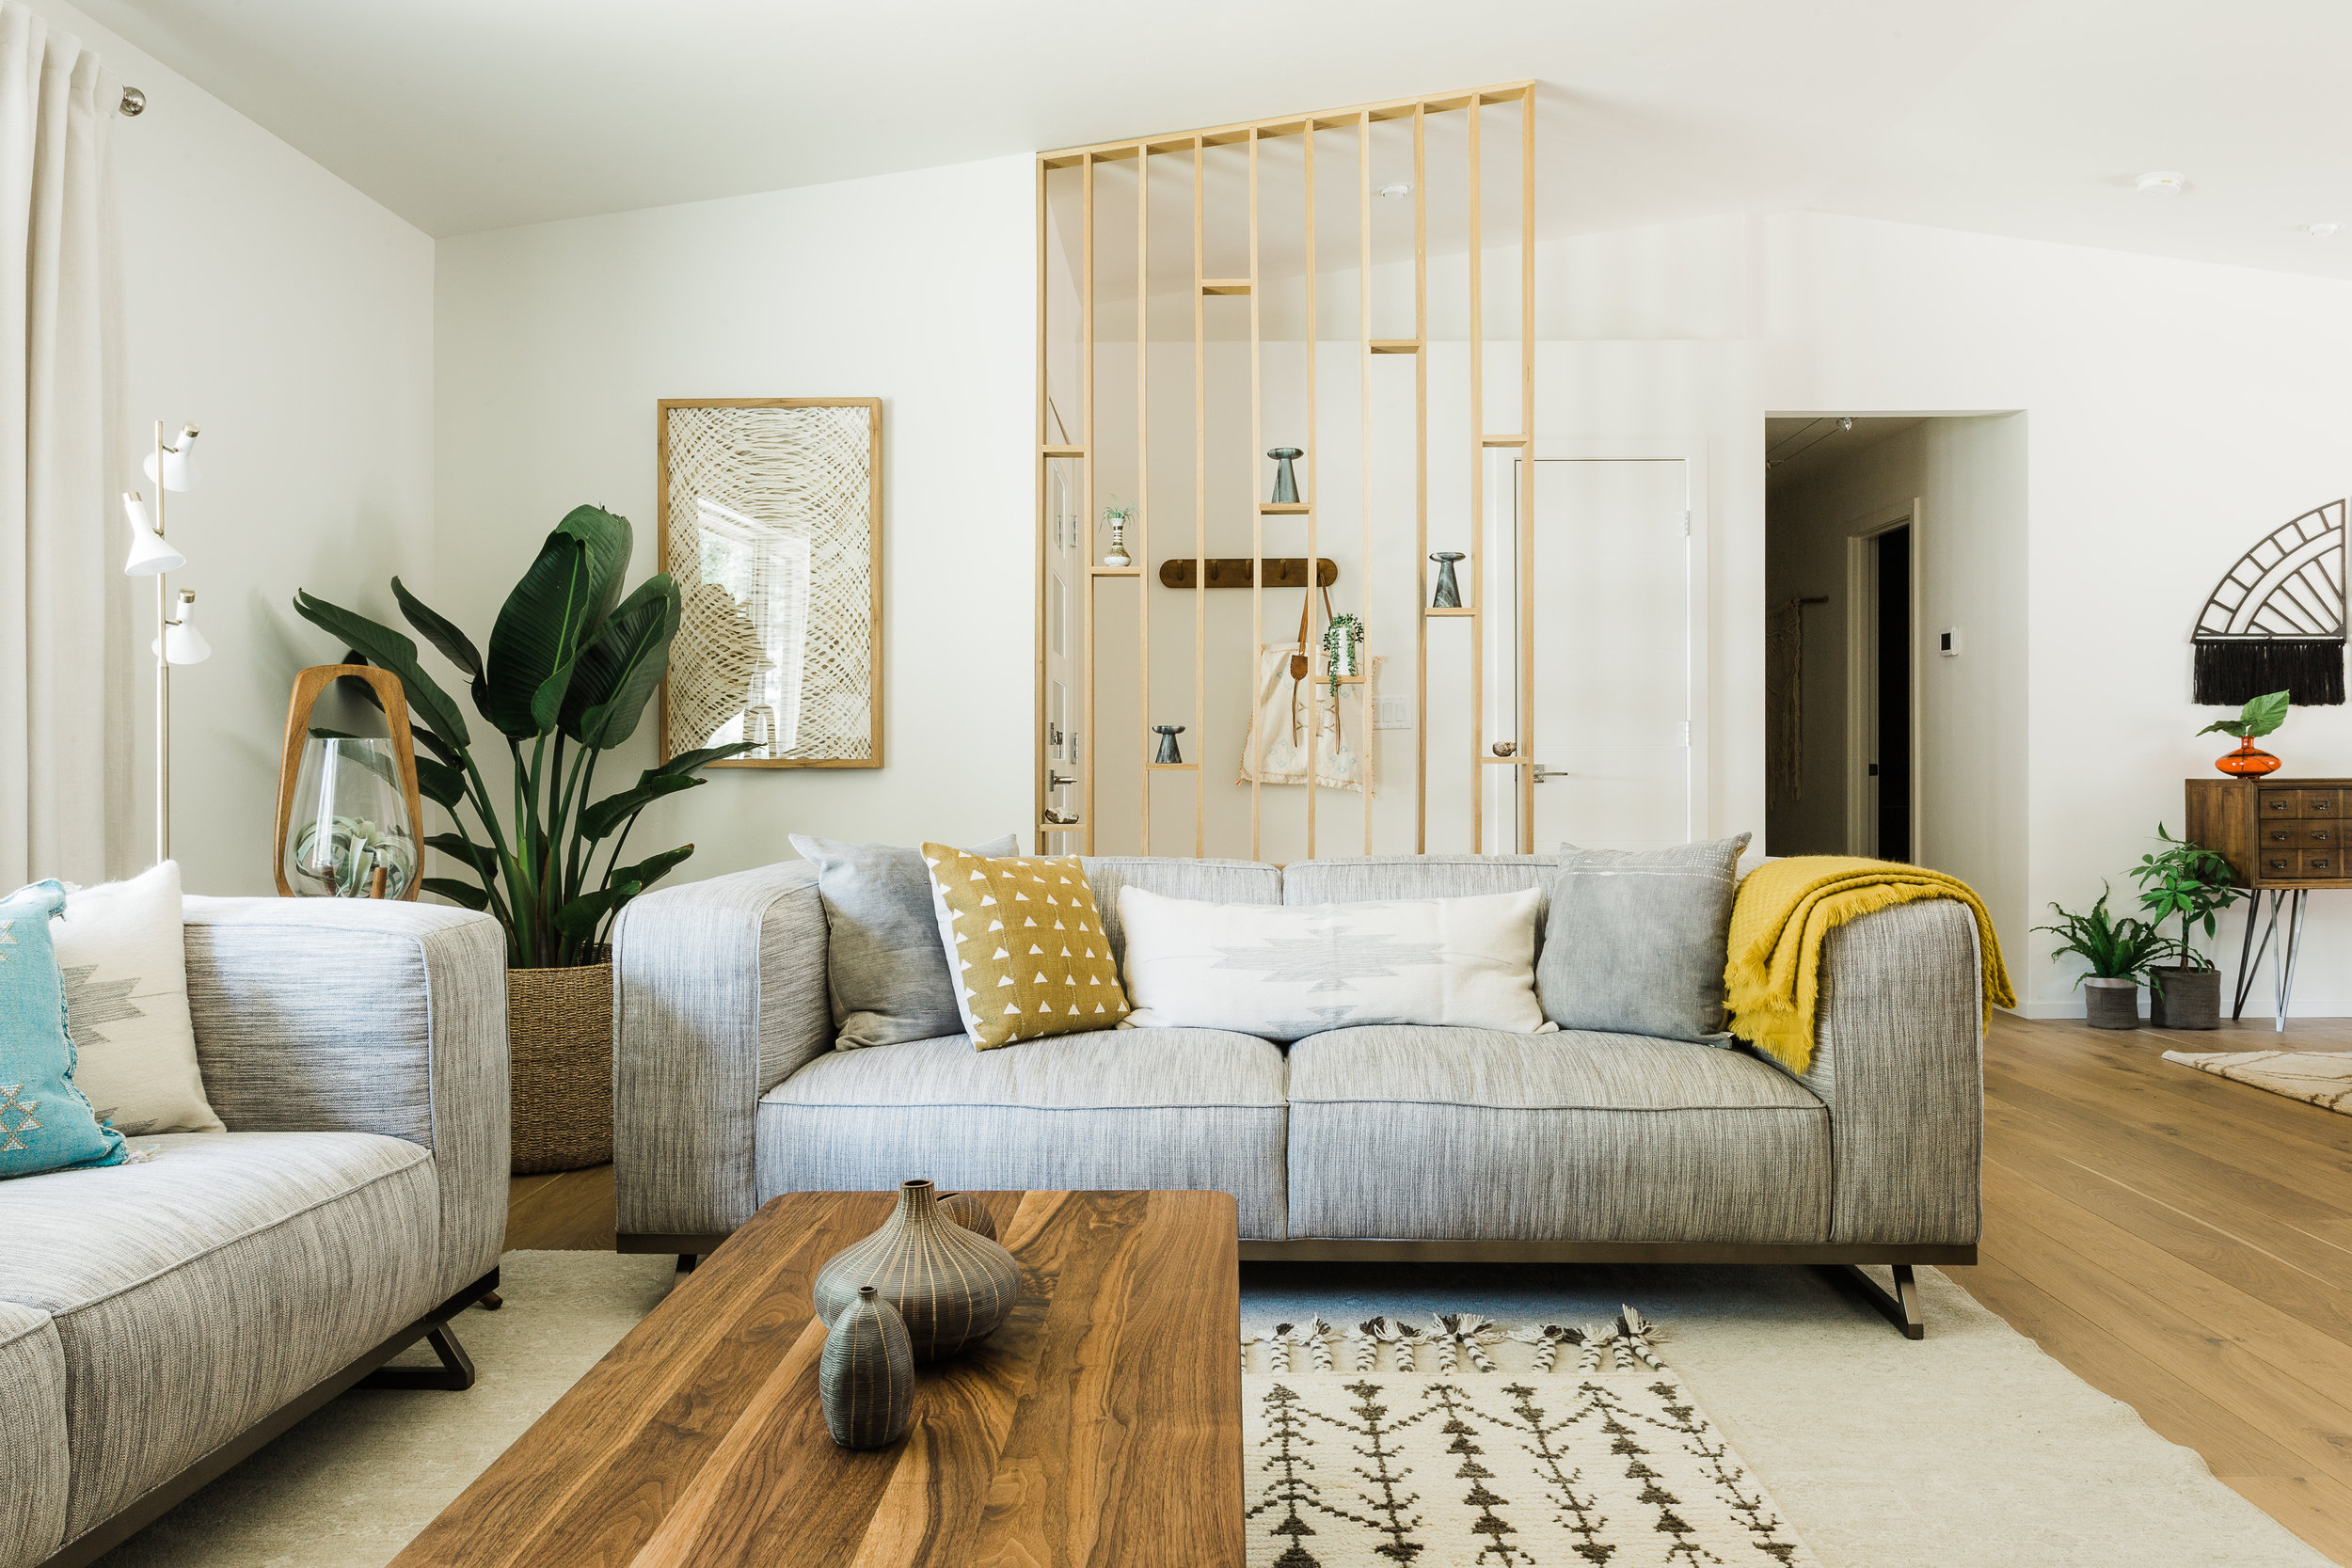 MID CENTURY MEETS BOHO - Complete Home Interior Redesign…